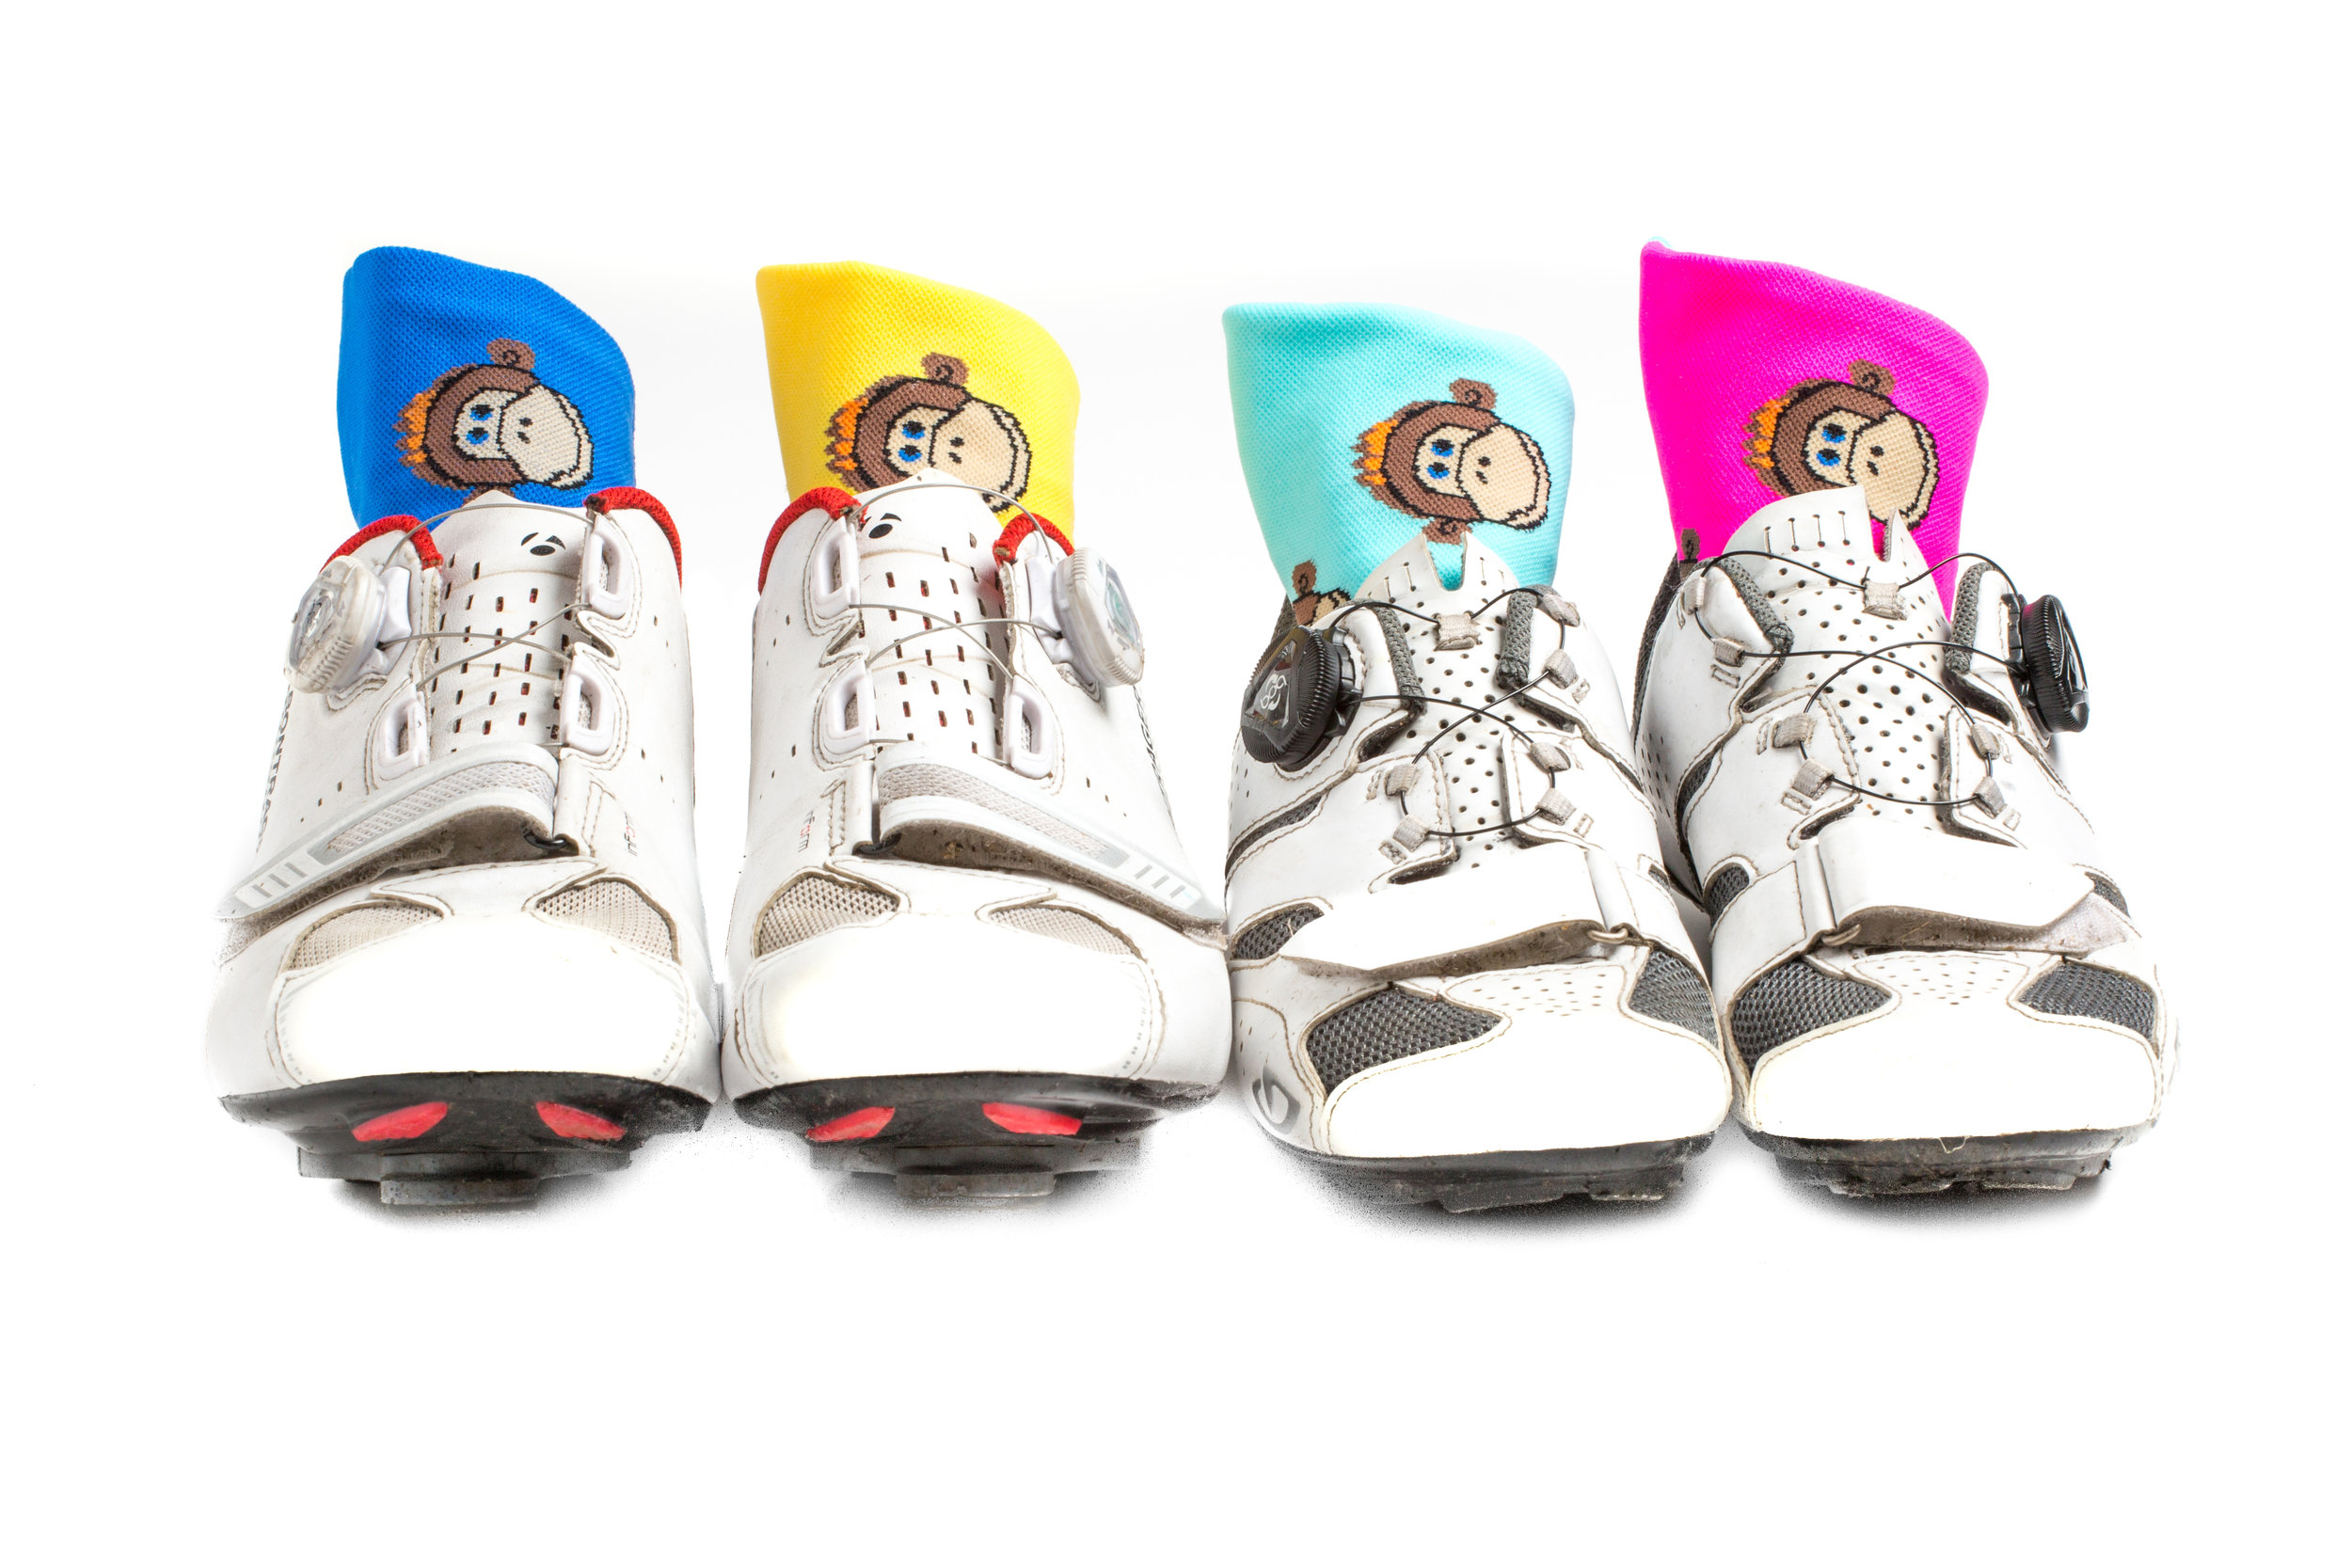 SPORTS MEDICINE - Mr Monkey Sox promotes an active lifestyle to help with management of MS symptoms and the general health and wellbeing of all. Whatever the weather or season, join us in staying active and wearing Sox that make you smile!